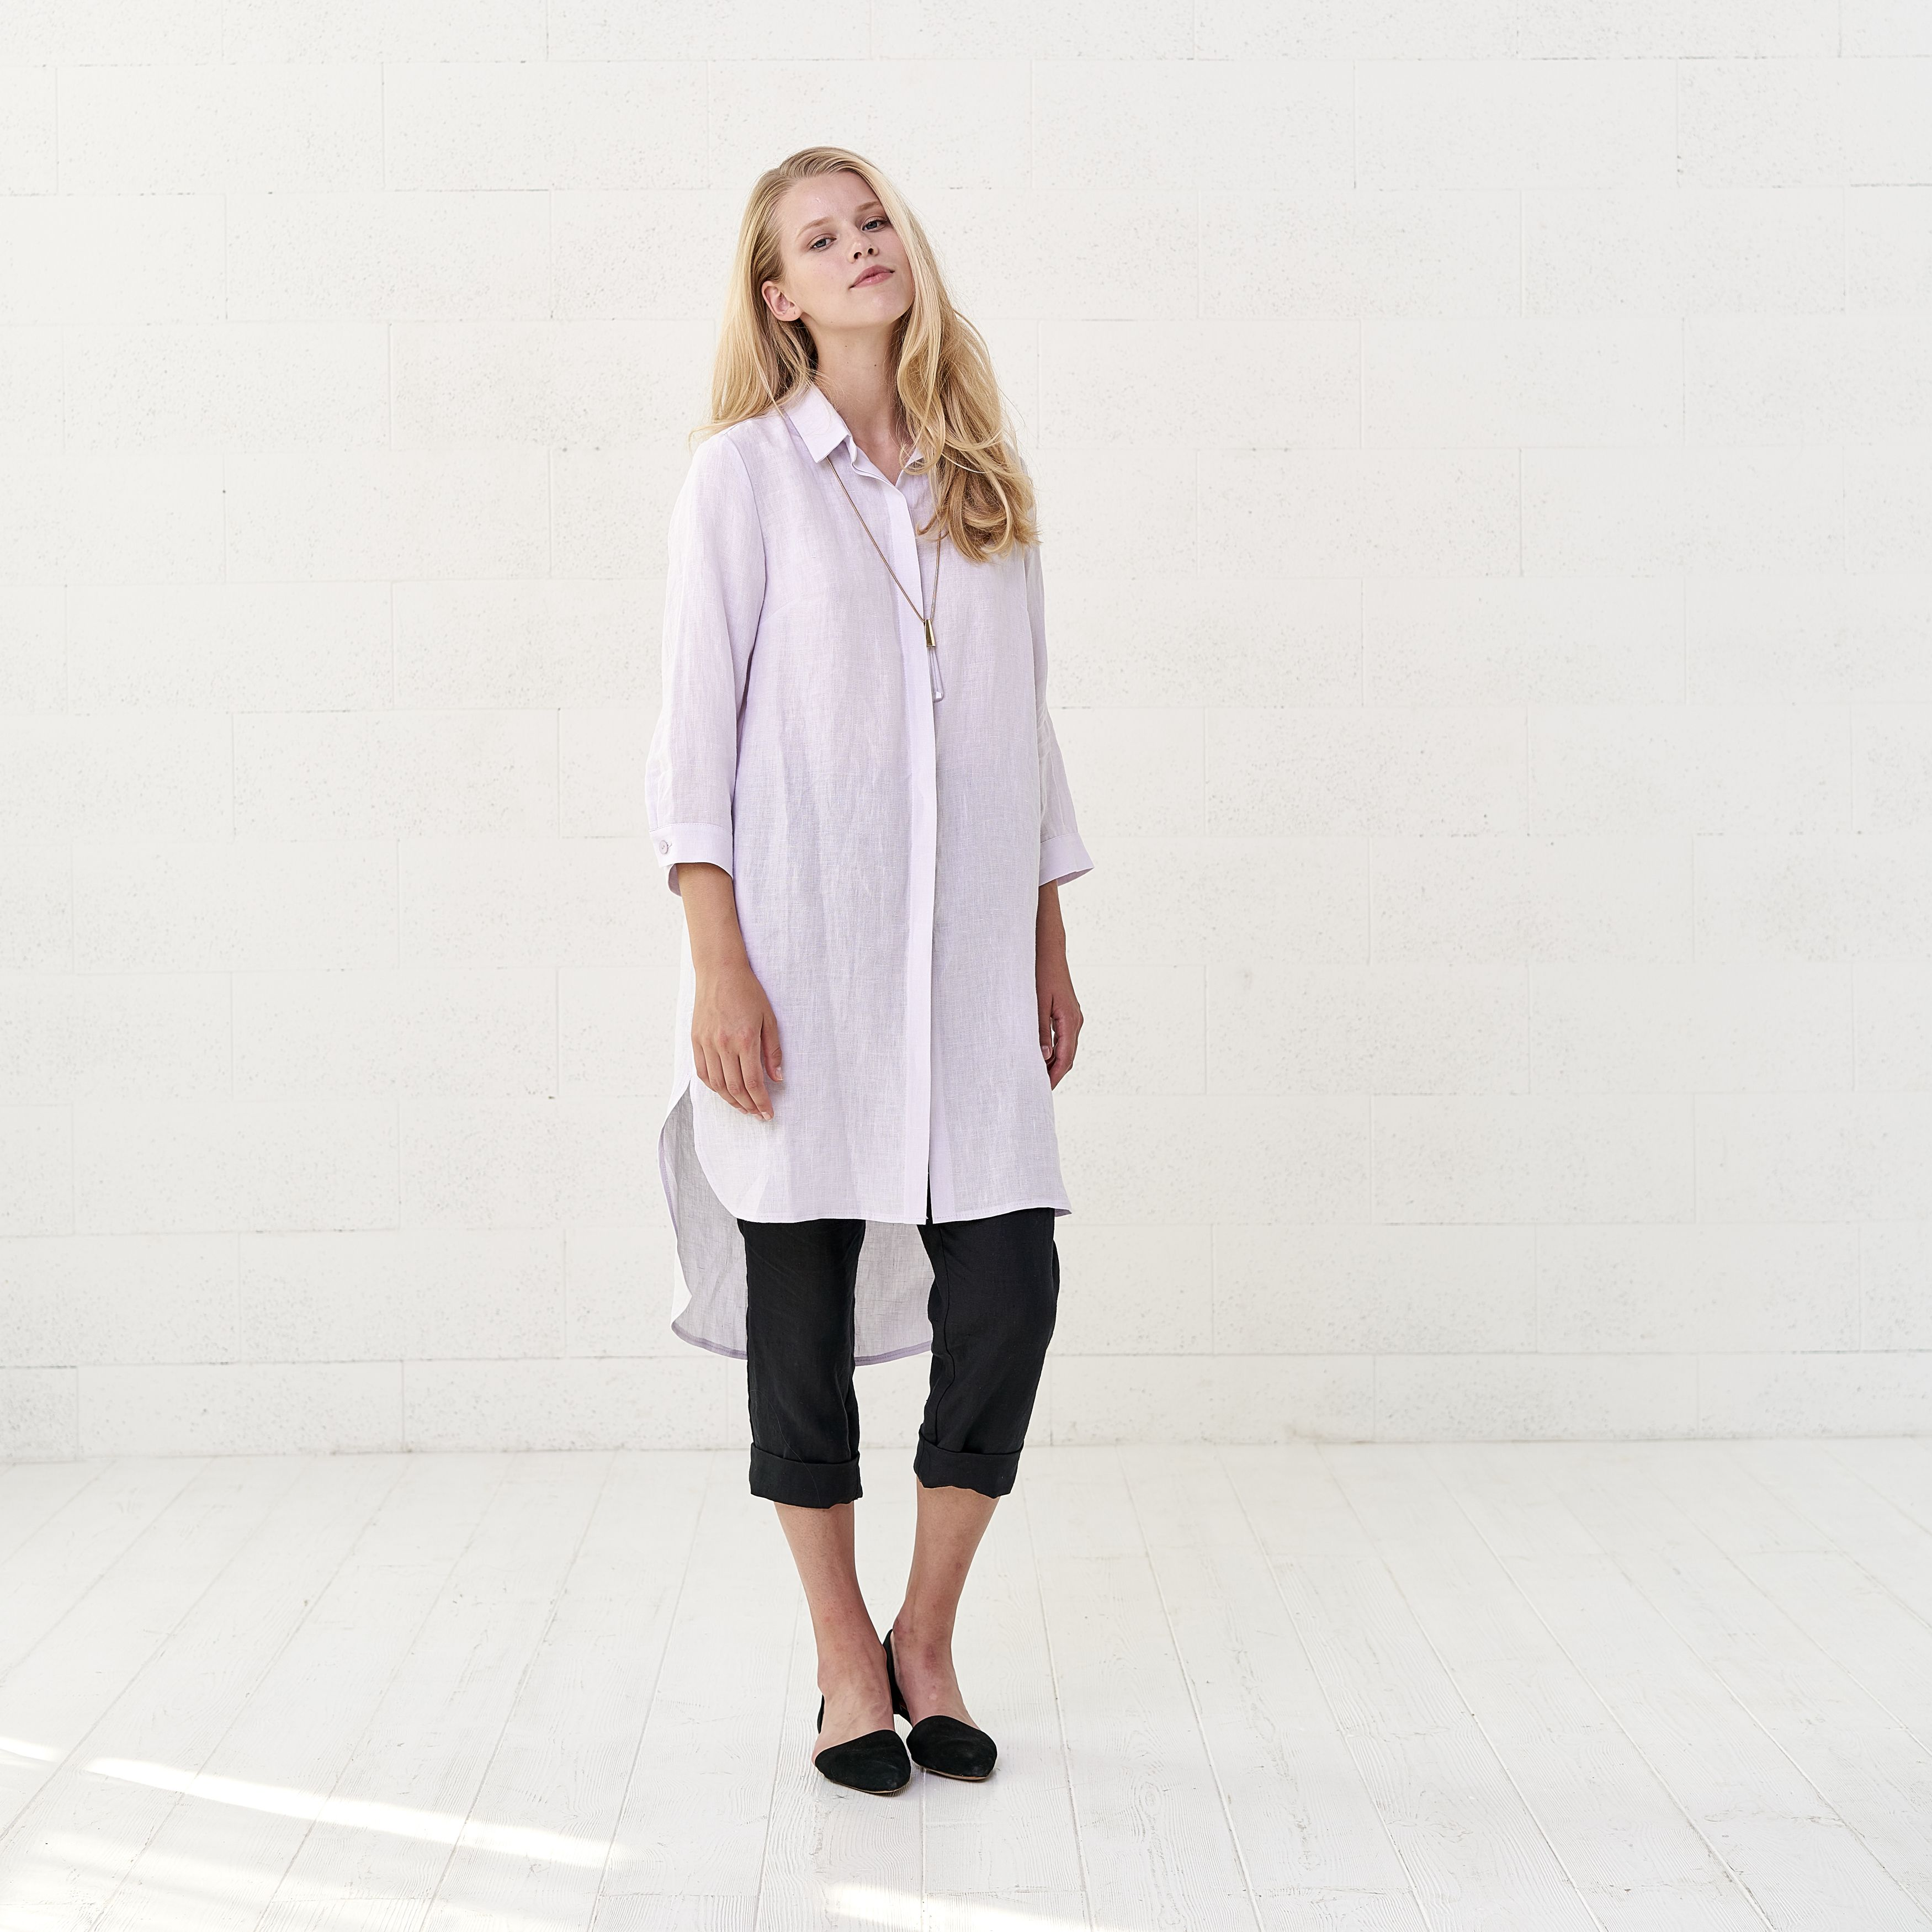 41a028dbee ... Dress. Sakura  loose  linen  shirt  blouse with 3 4 sleeve fits with   trousers or skirt. Practical three quarter sleeves and pockets make shirt  ...